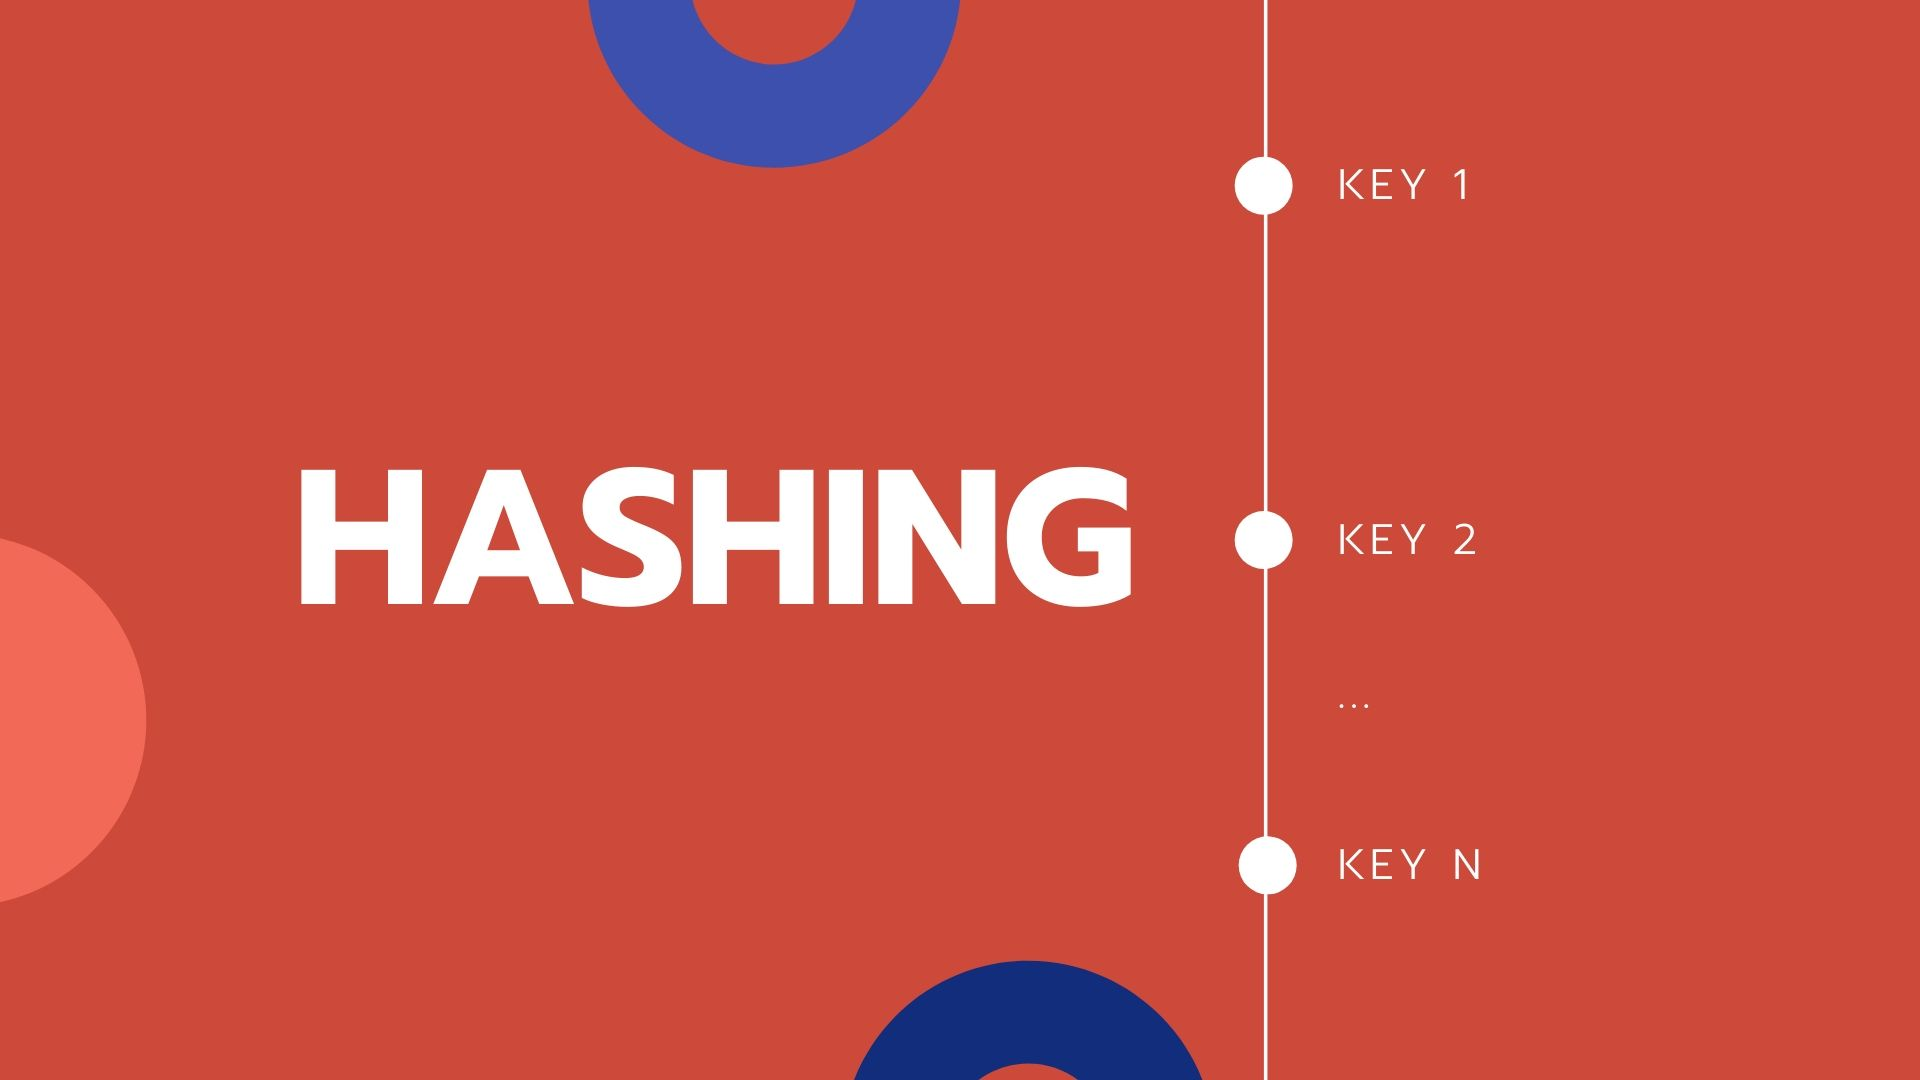 What is Hashing? - Studytonight